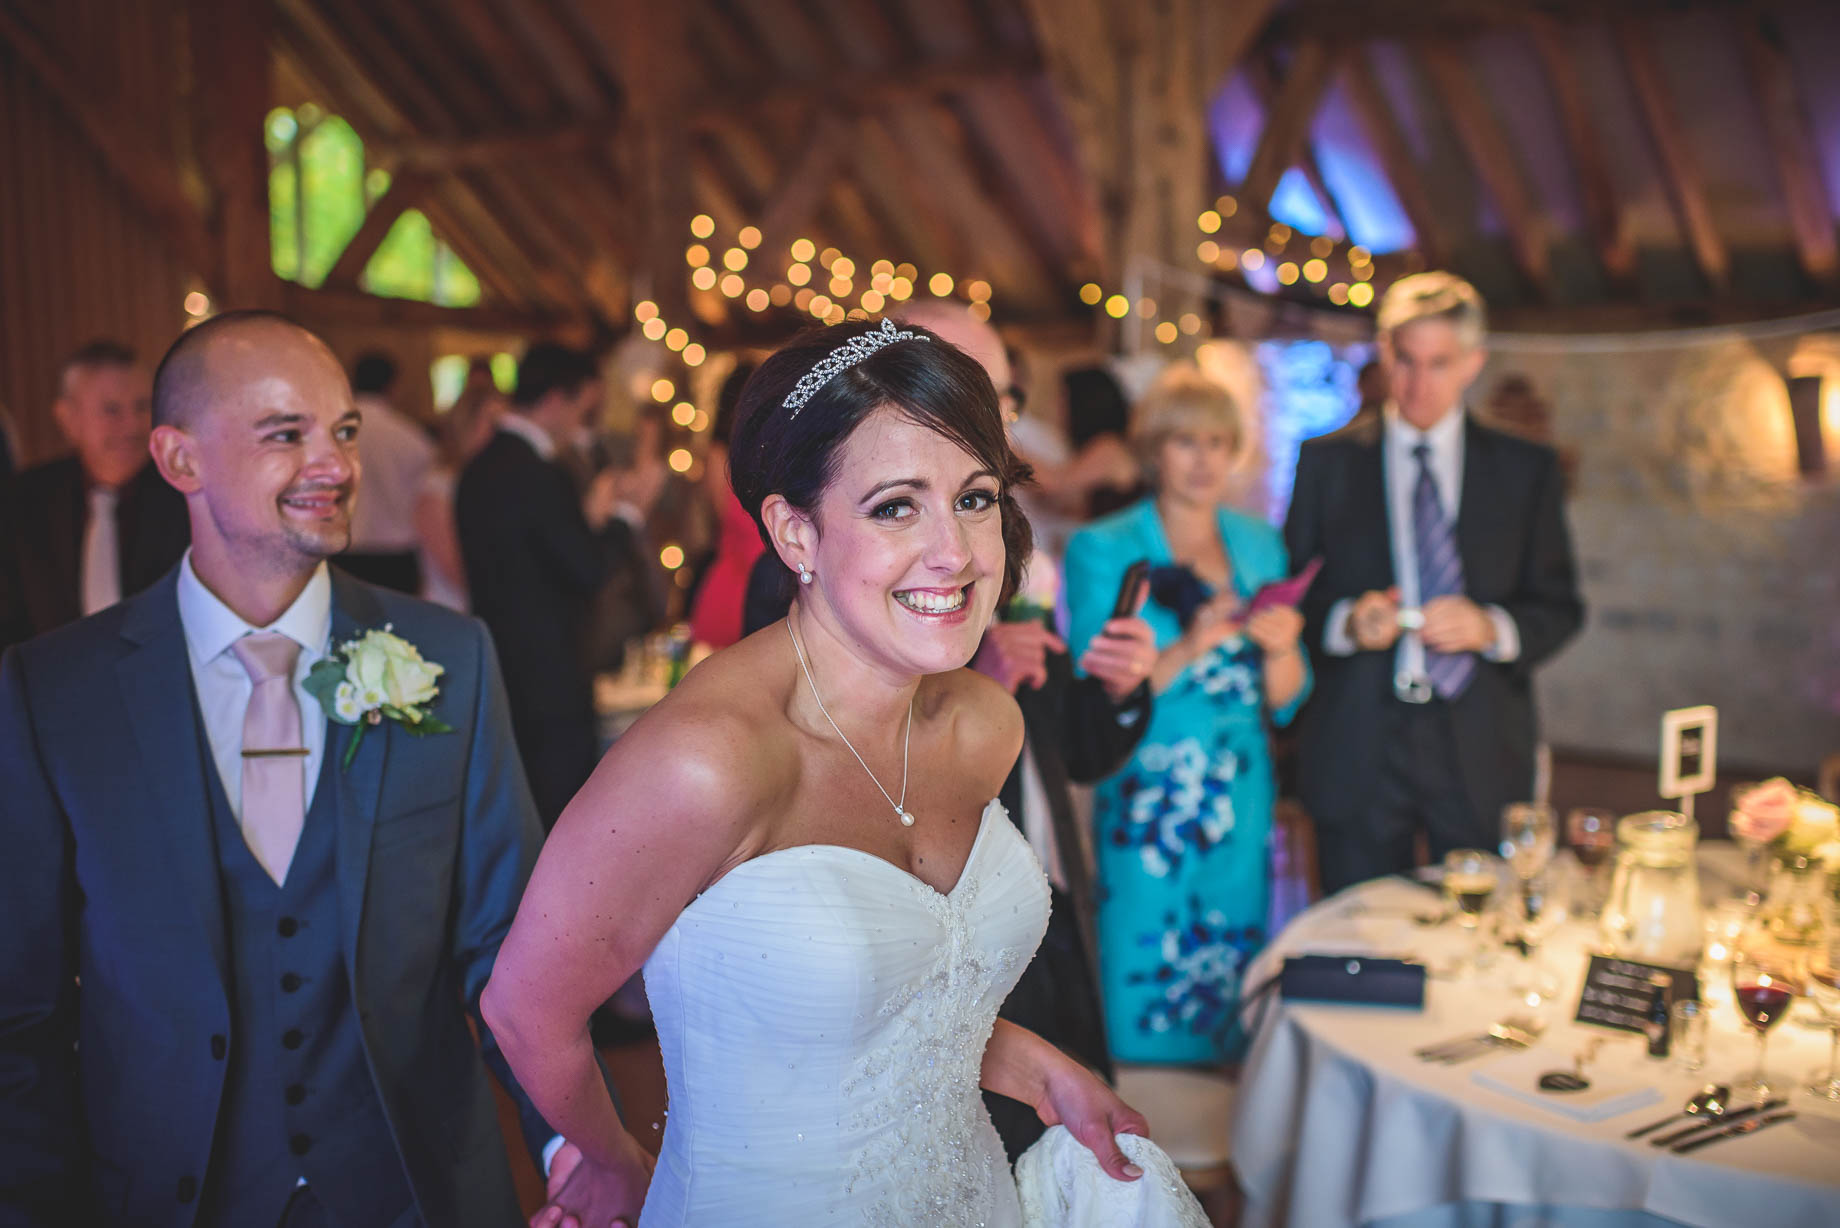 Bury Court Barn wedding photography - Guy Collier Photography - Karen and John (119 of 166)